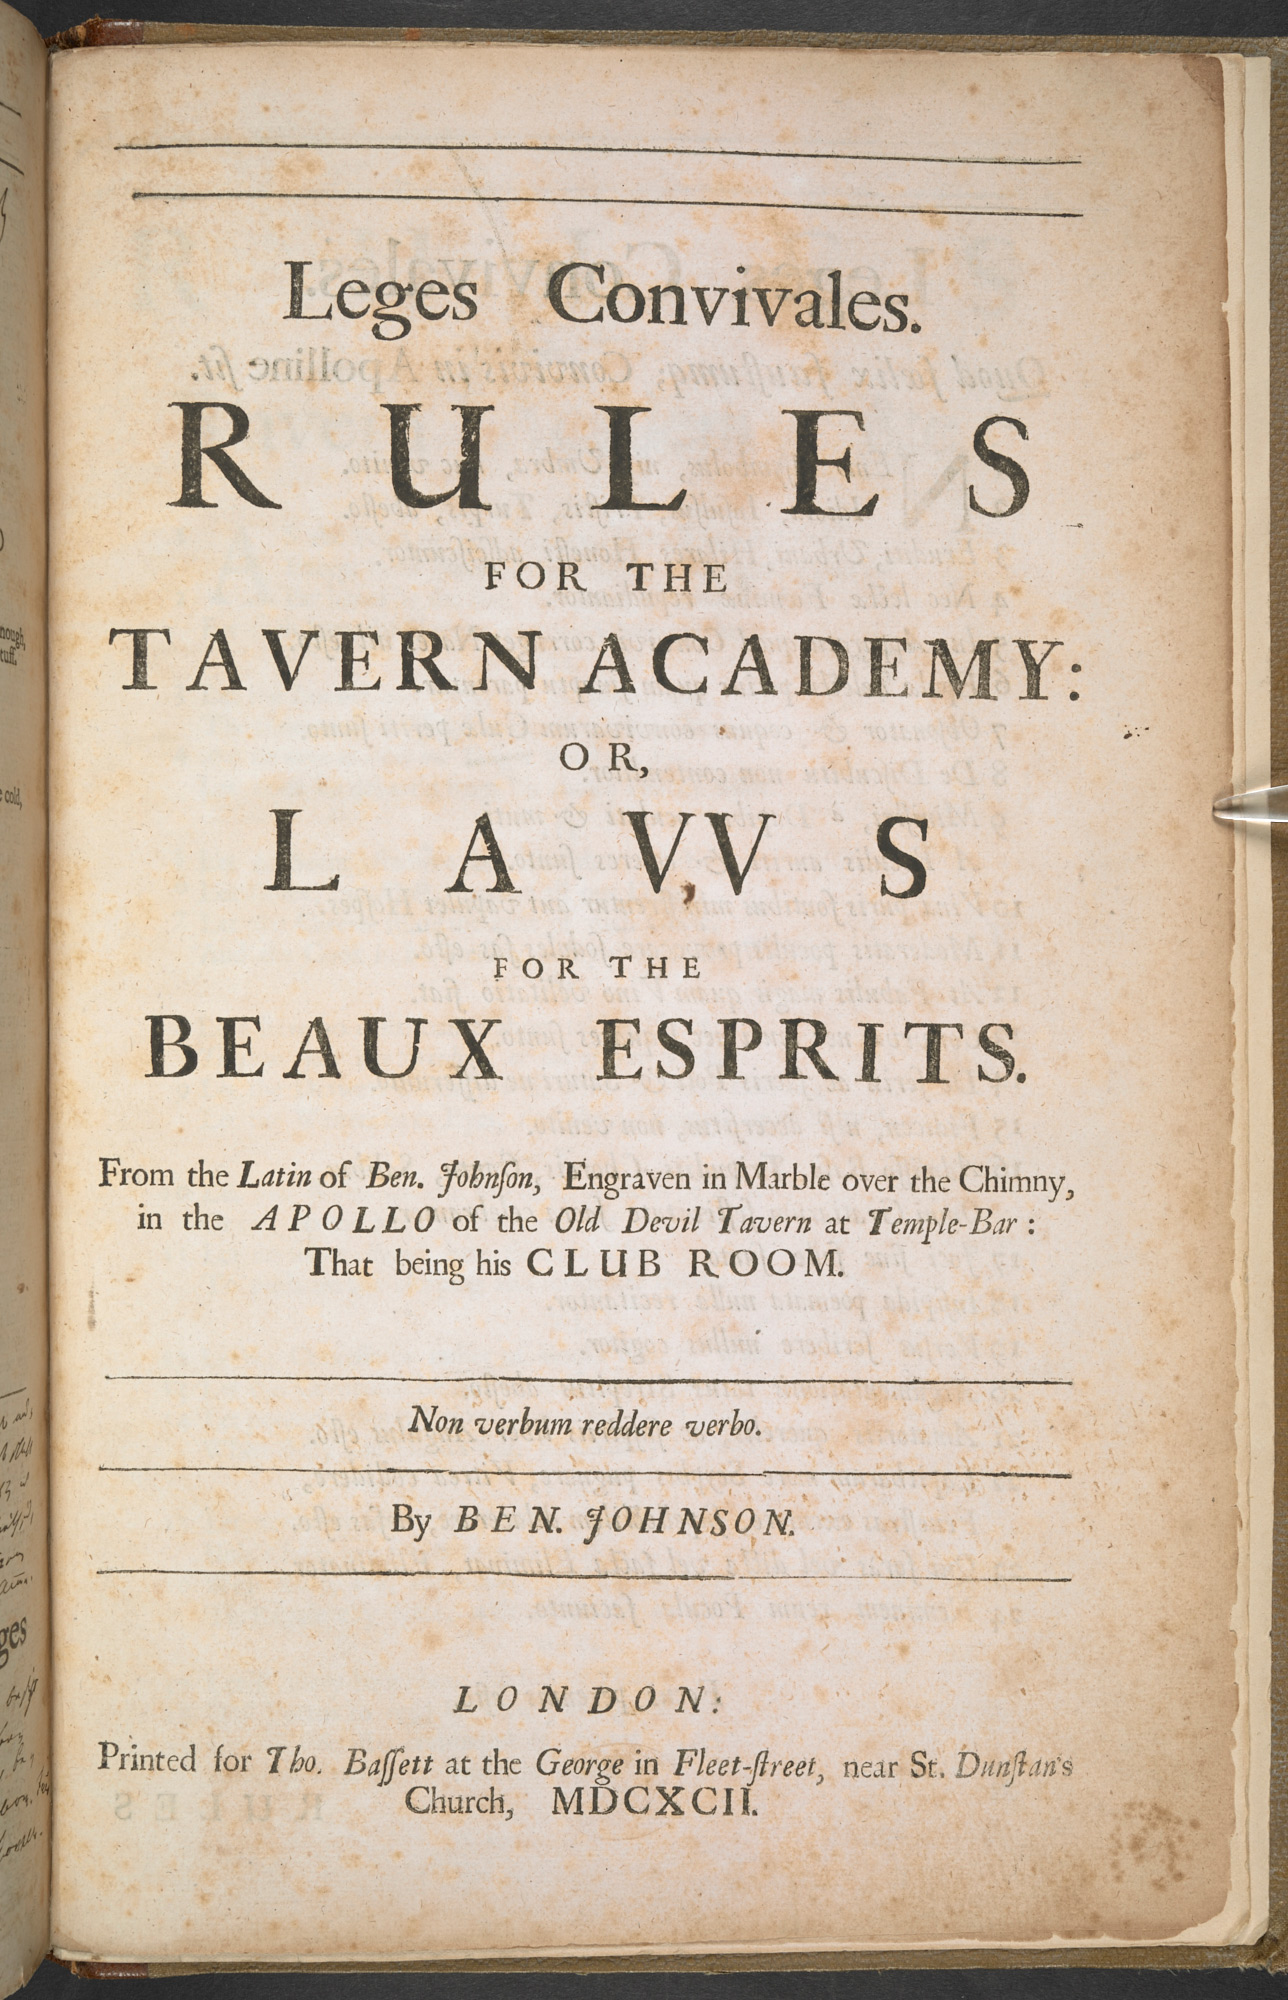 Ben Jonson's Leges Convivales, or Rules for the Tavern Academy